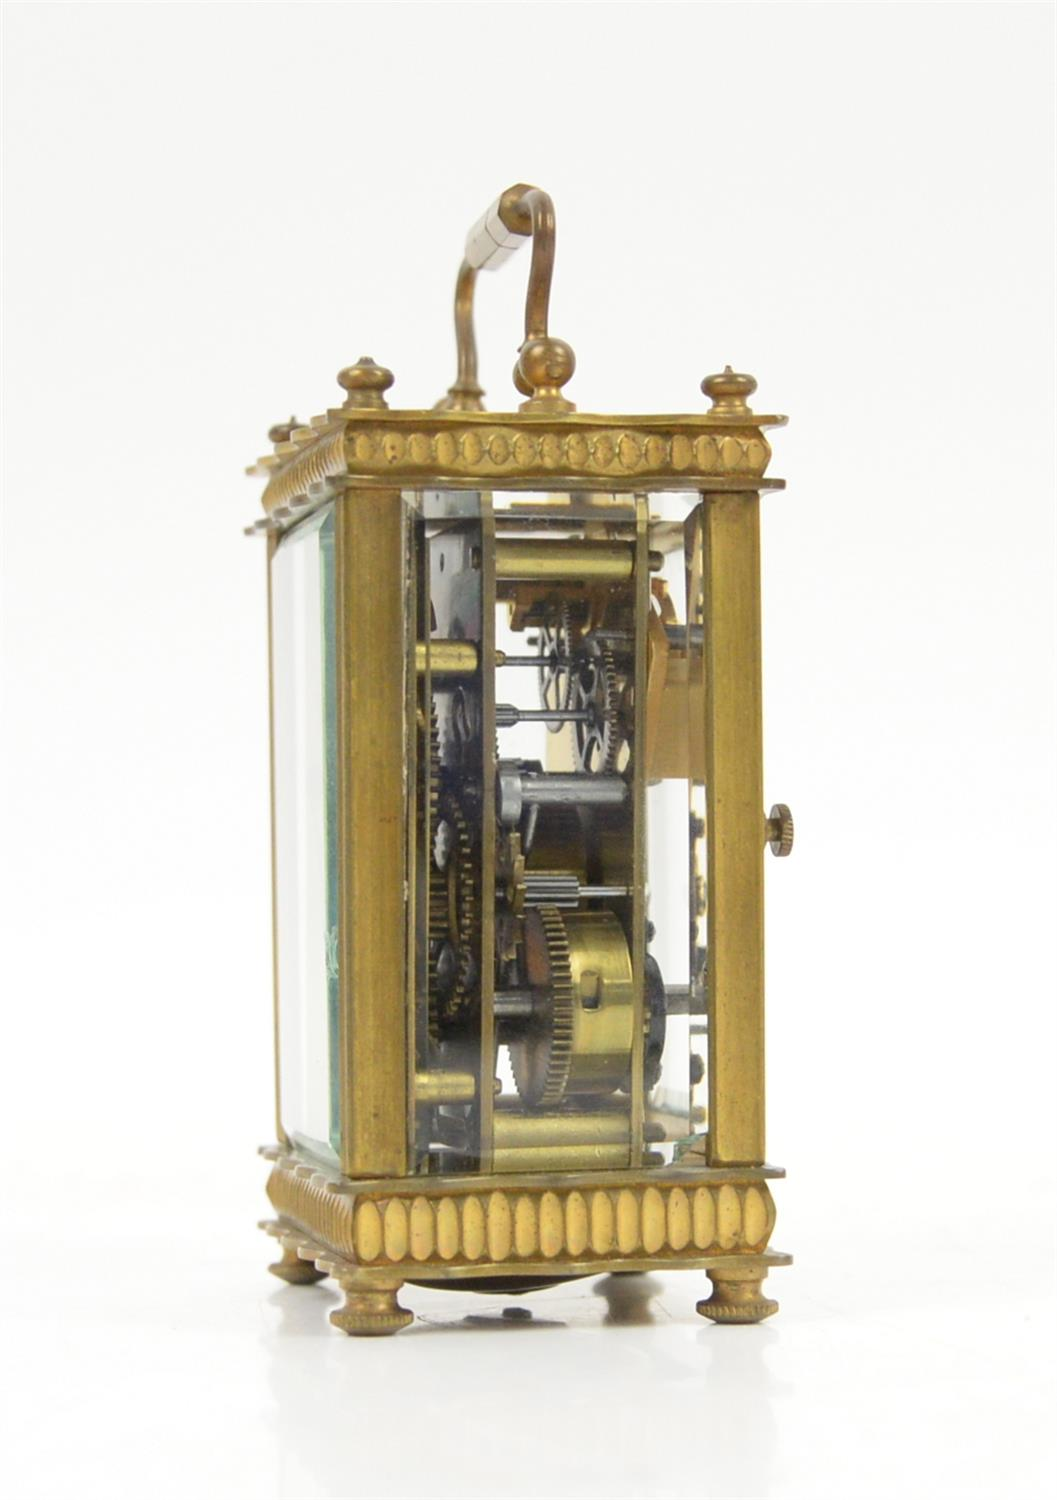 French brass carriage clock, the silvered dial with Arabic numerals and seconds subsidiary dial, - Image 3 of 5